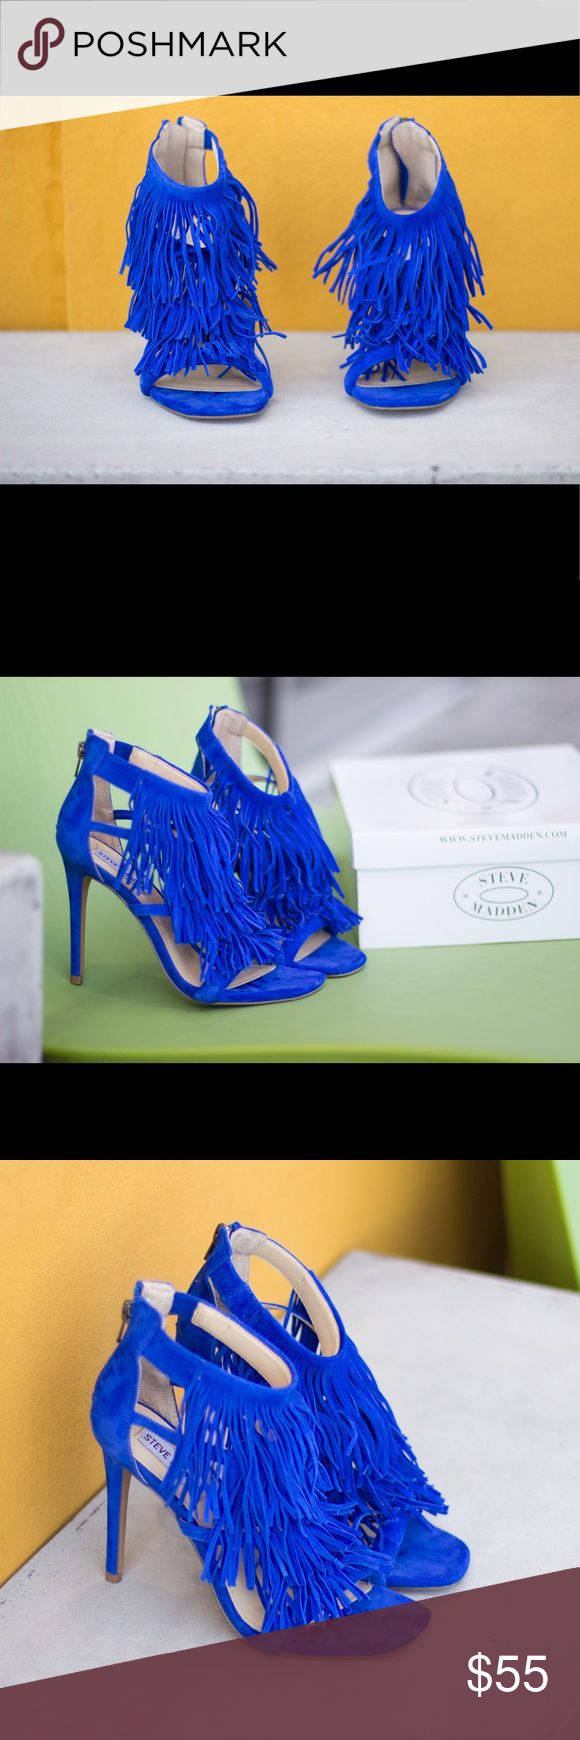 """These babes can be your """"fringe with benefits."""" Barely worn(once to be exact). These blue suede fringe Steve Madden heels are sure to get the party started! Not only are these show stoppers cute and on trend, they're super comfortable. You'll be dancing all night! Steve Madden Shoes Sandals"""